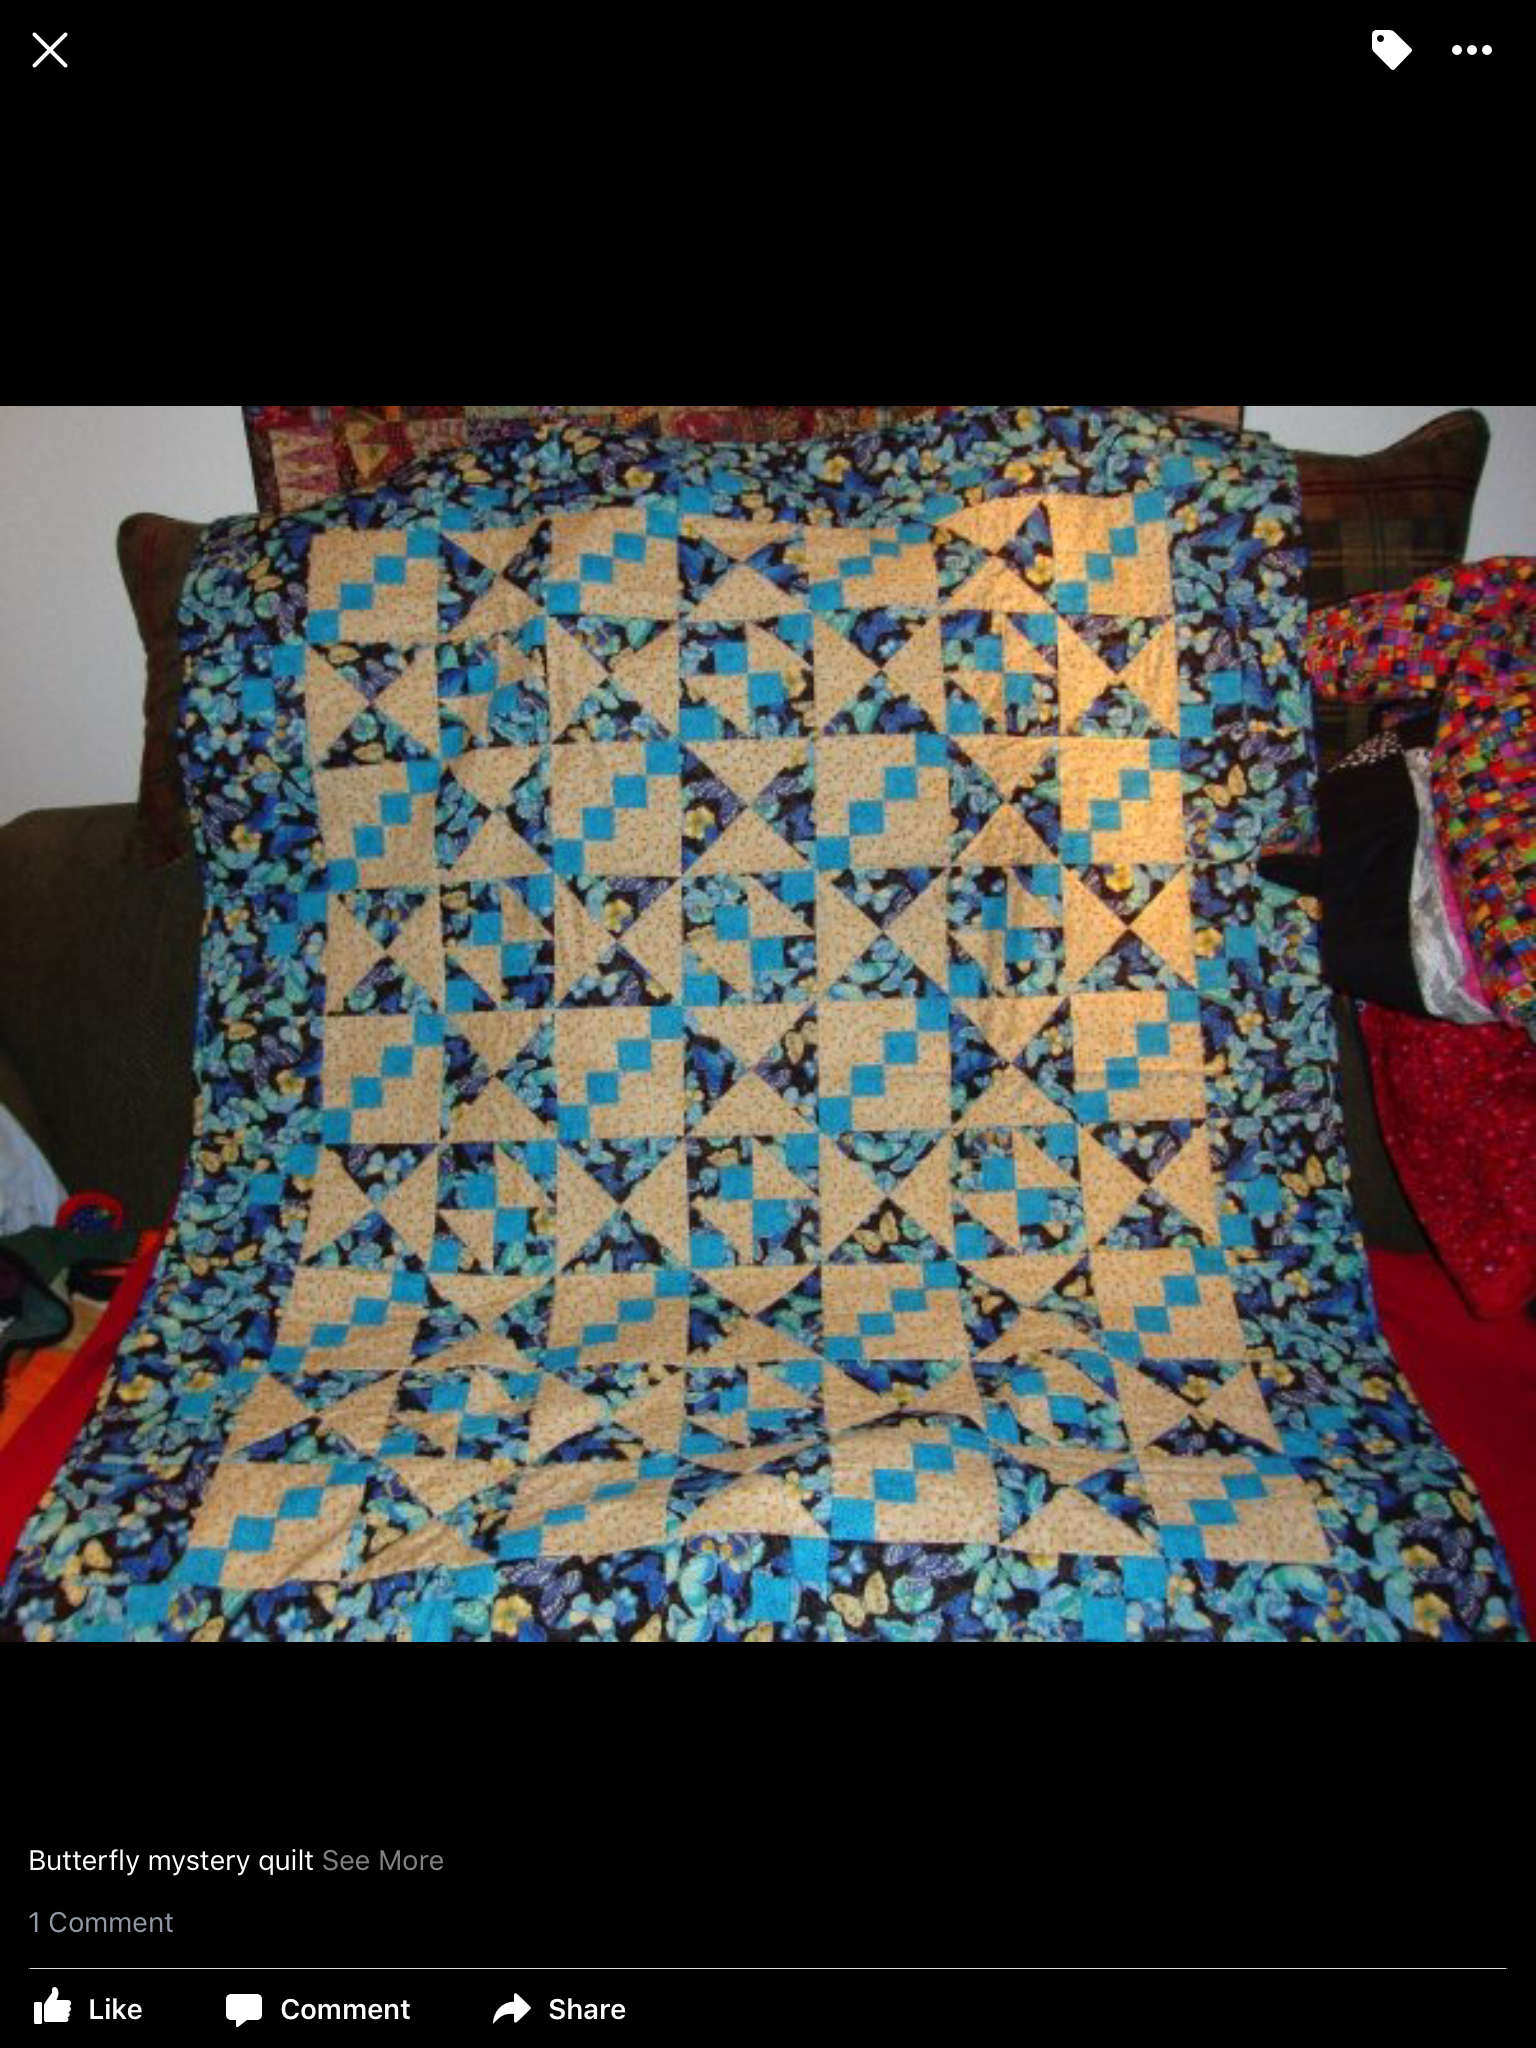 Pin by Karen Kindischi on Quilts Quilts, Blanket, Home